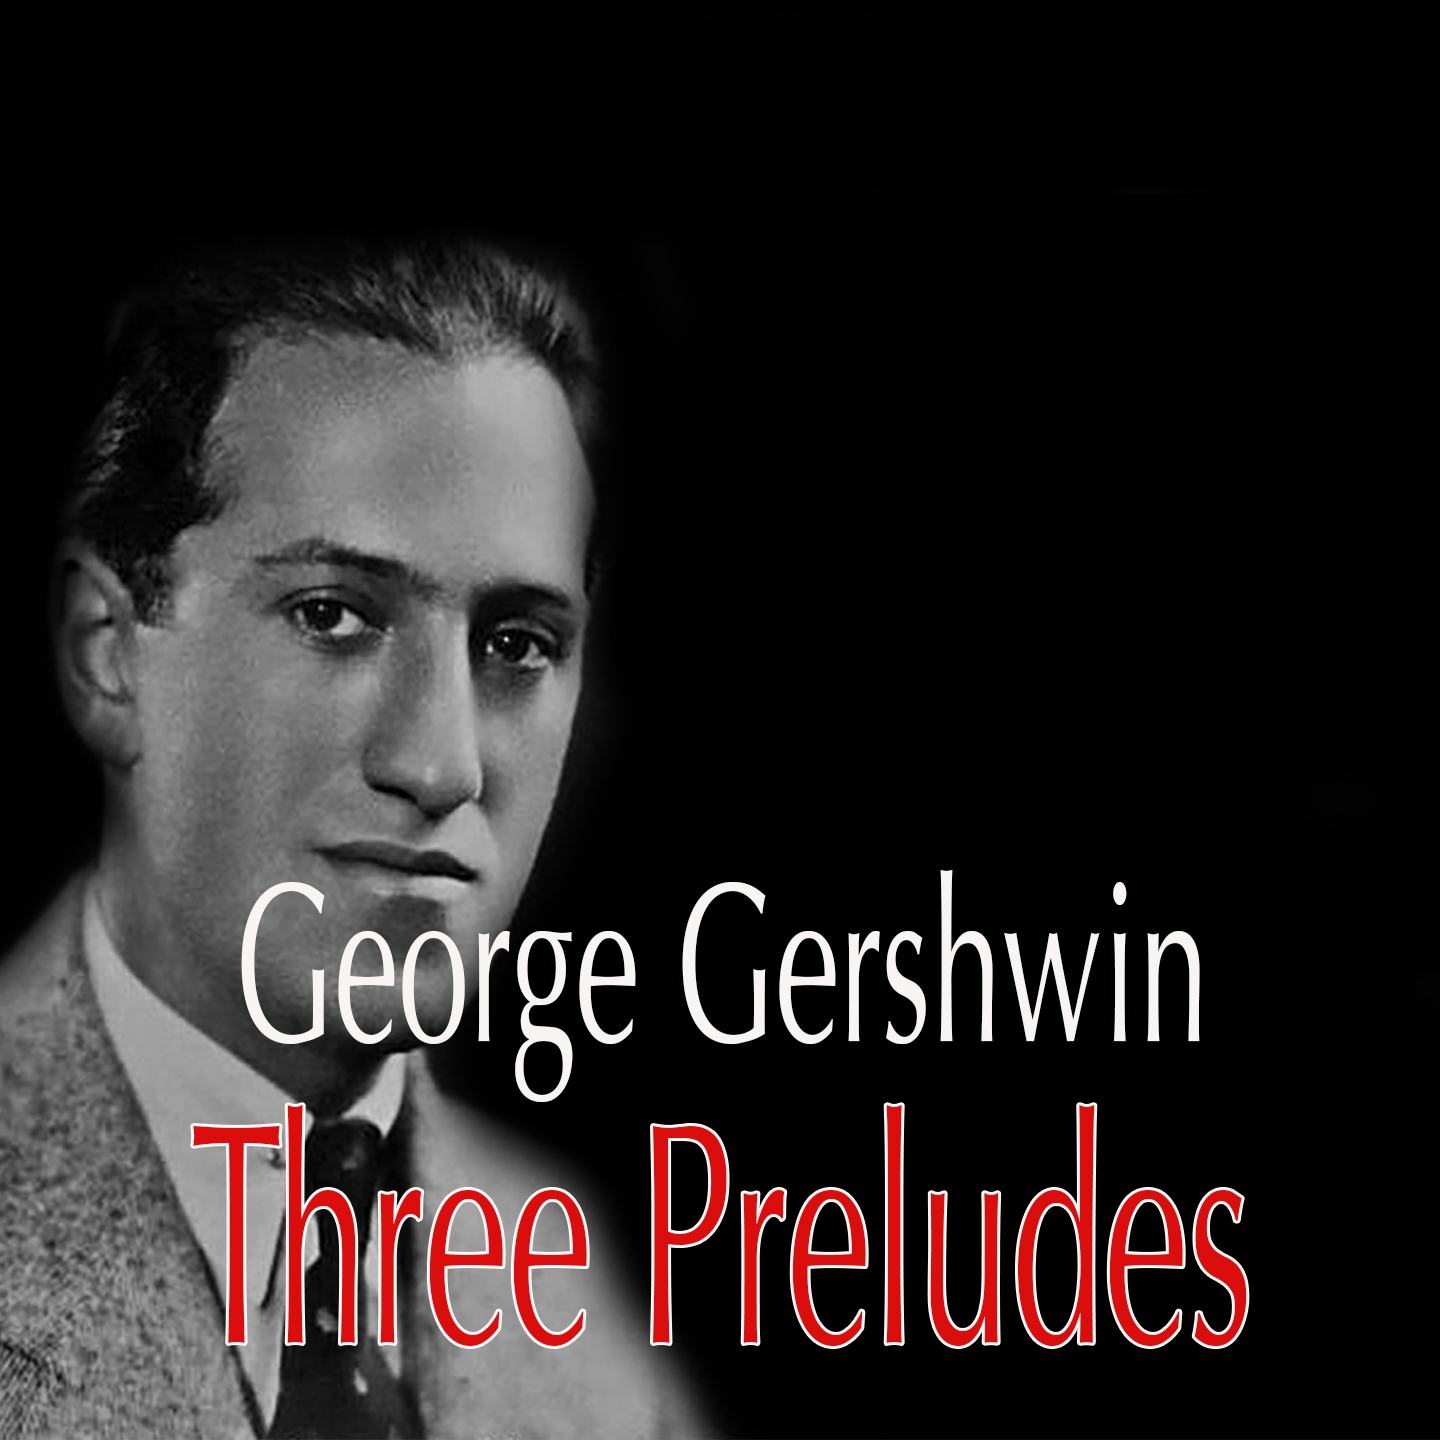 George Gershwin: Three Preludes